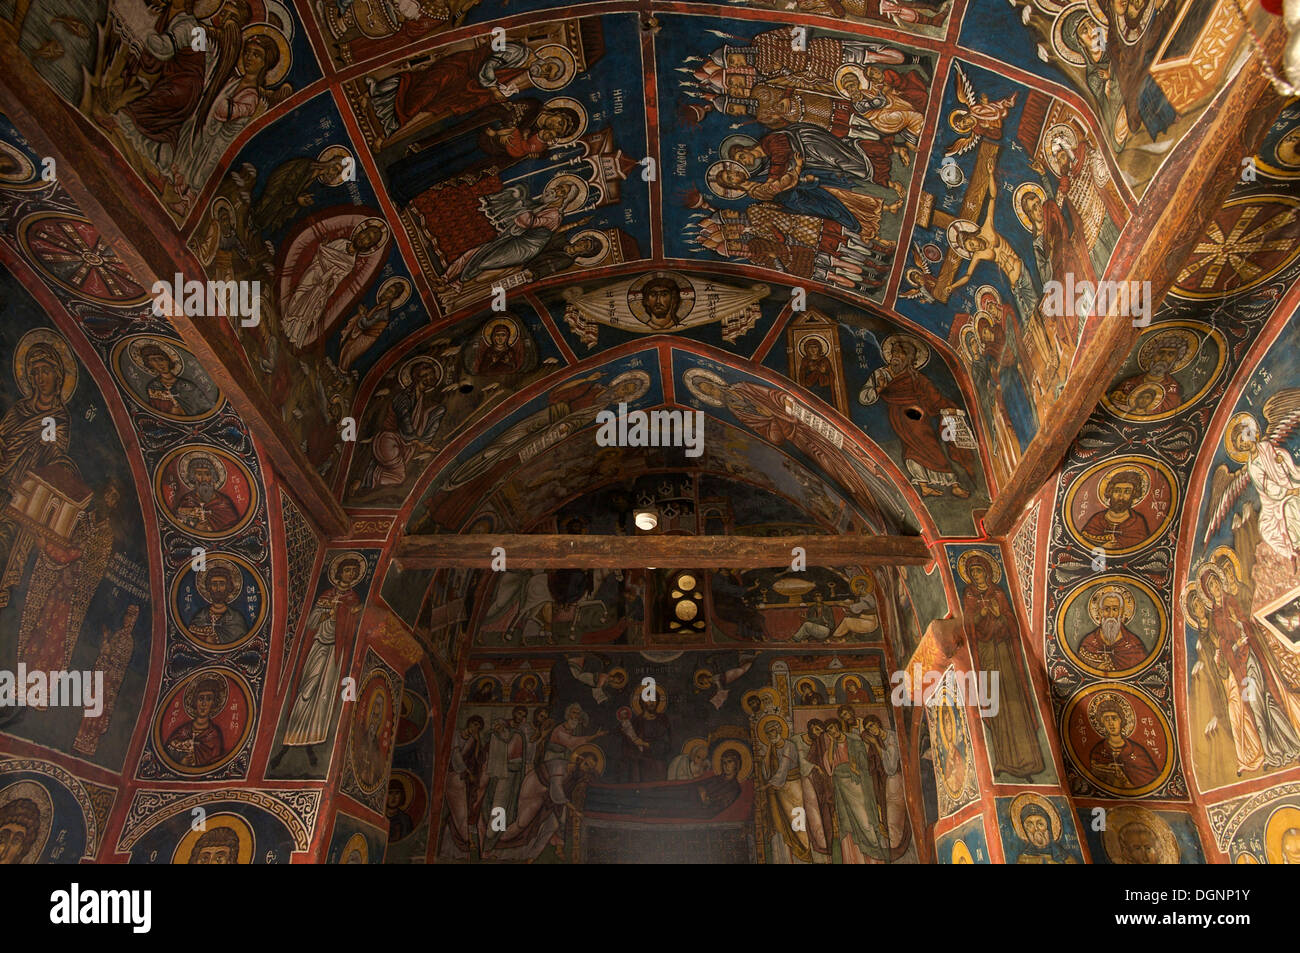 900-year-old wall paintings in the Greek Orthodox church Panagia Phorbiotissa, UNESCO World Heritage Church, Asinou - Stock Image